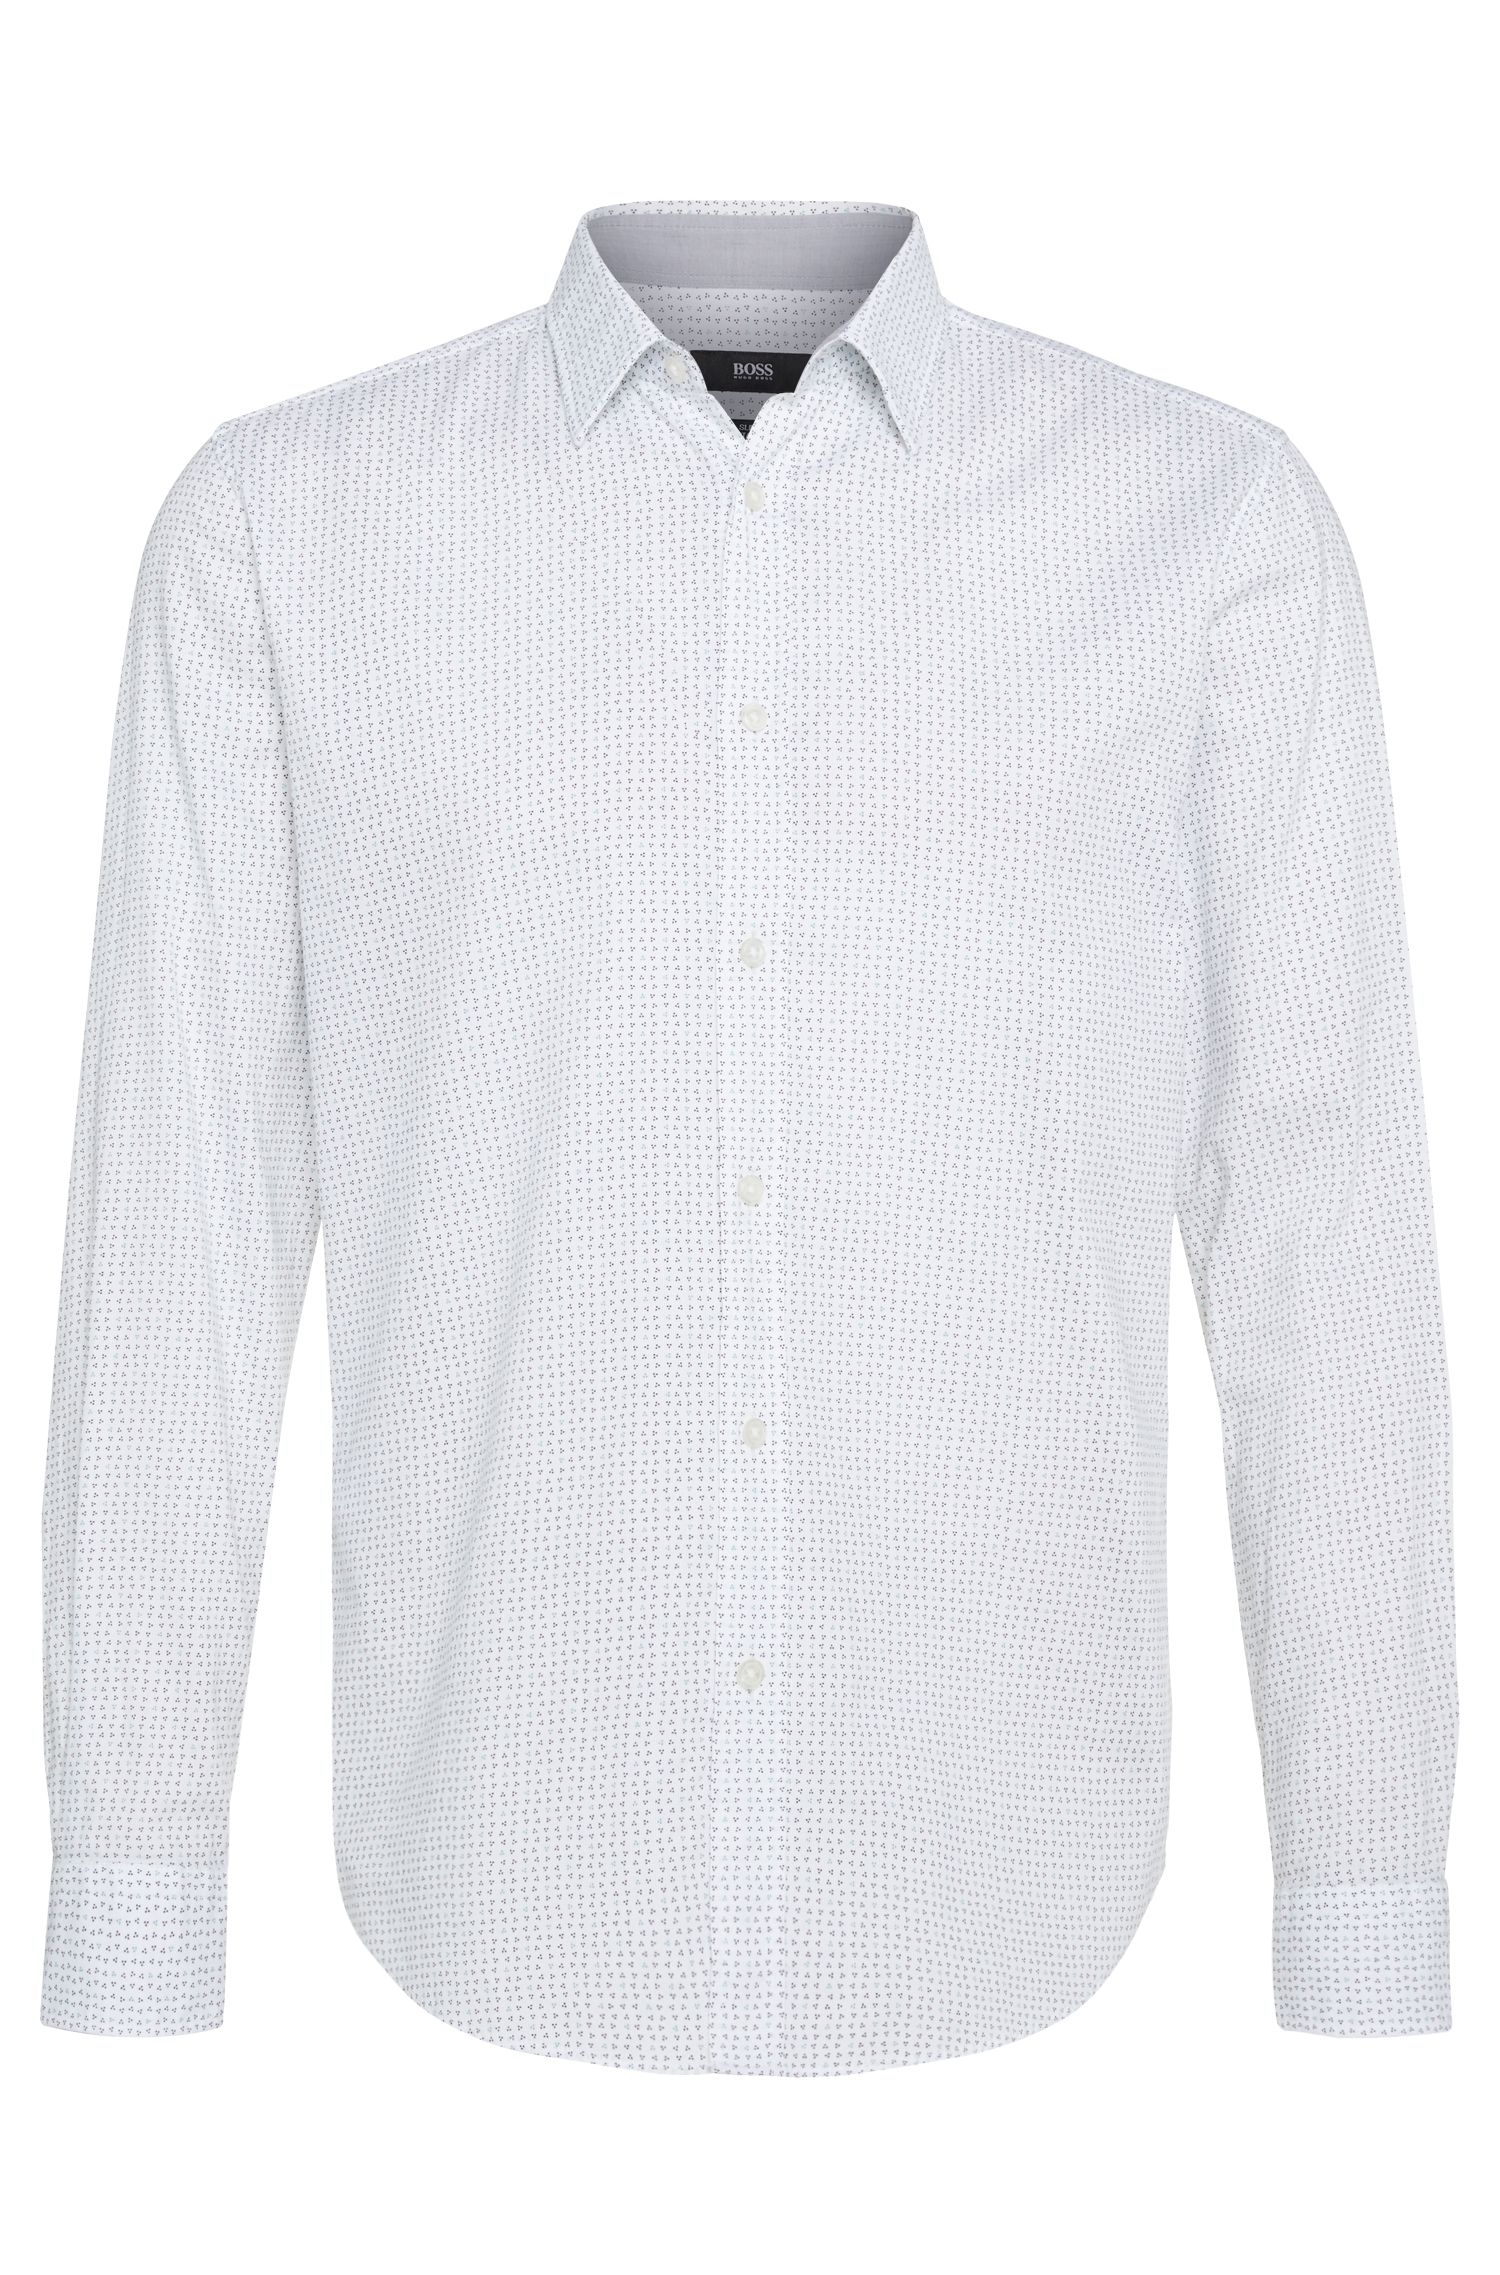 'Ronni' | Slim Fit, Italian Cotton Button Down Shirt